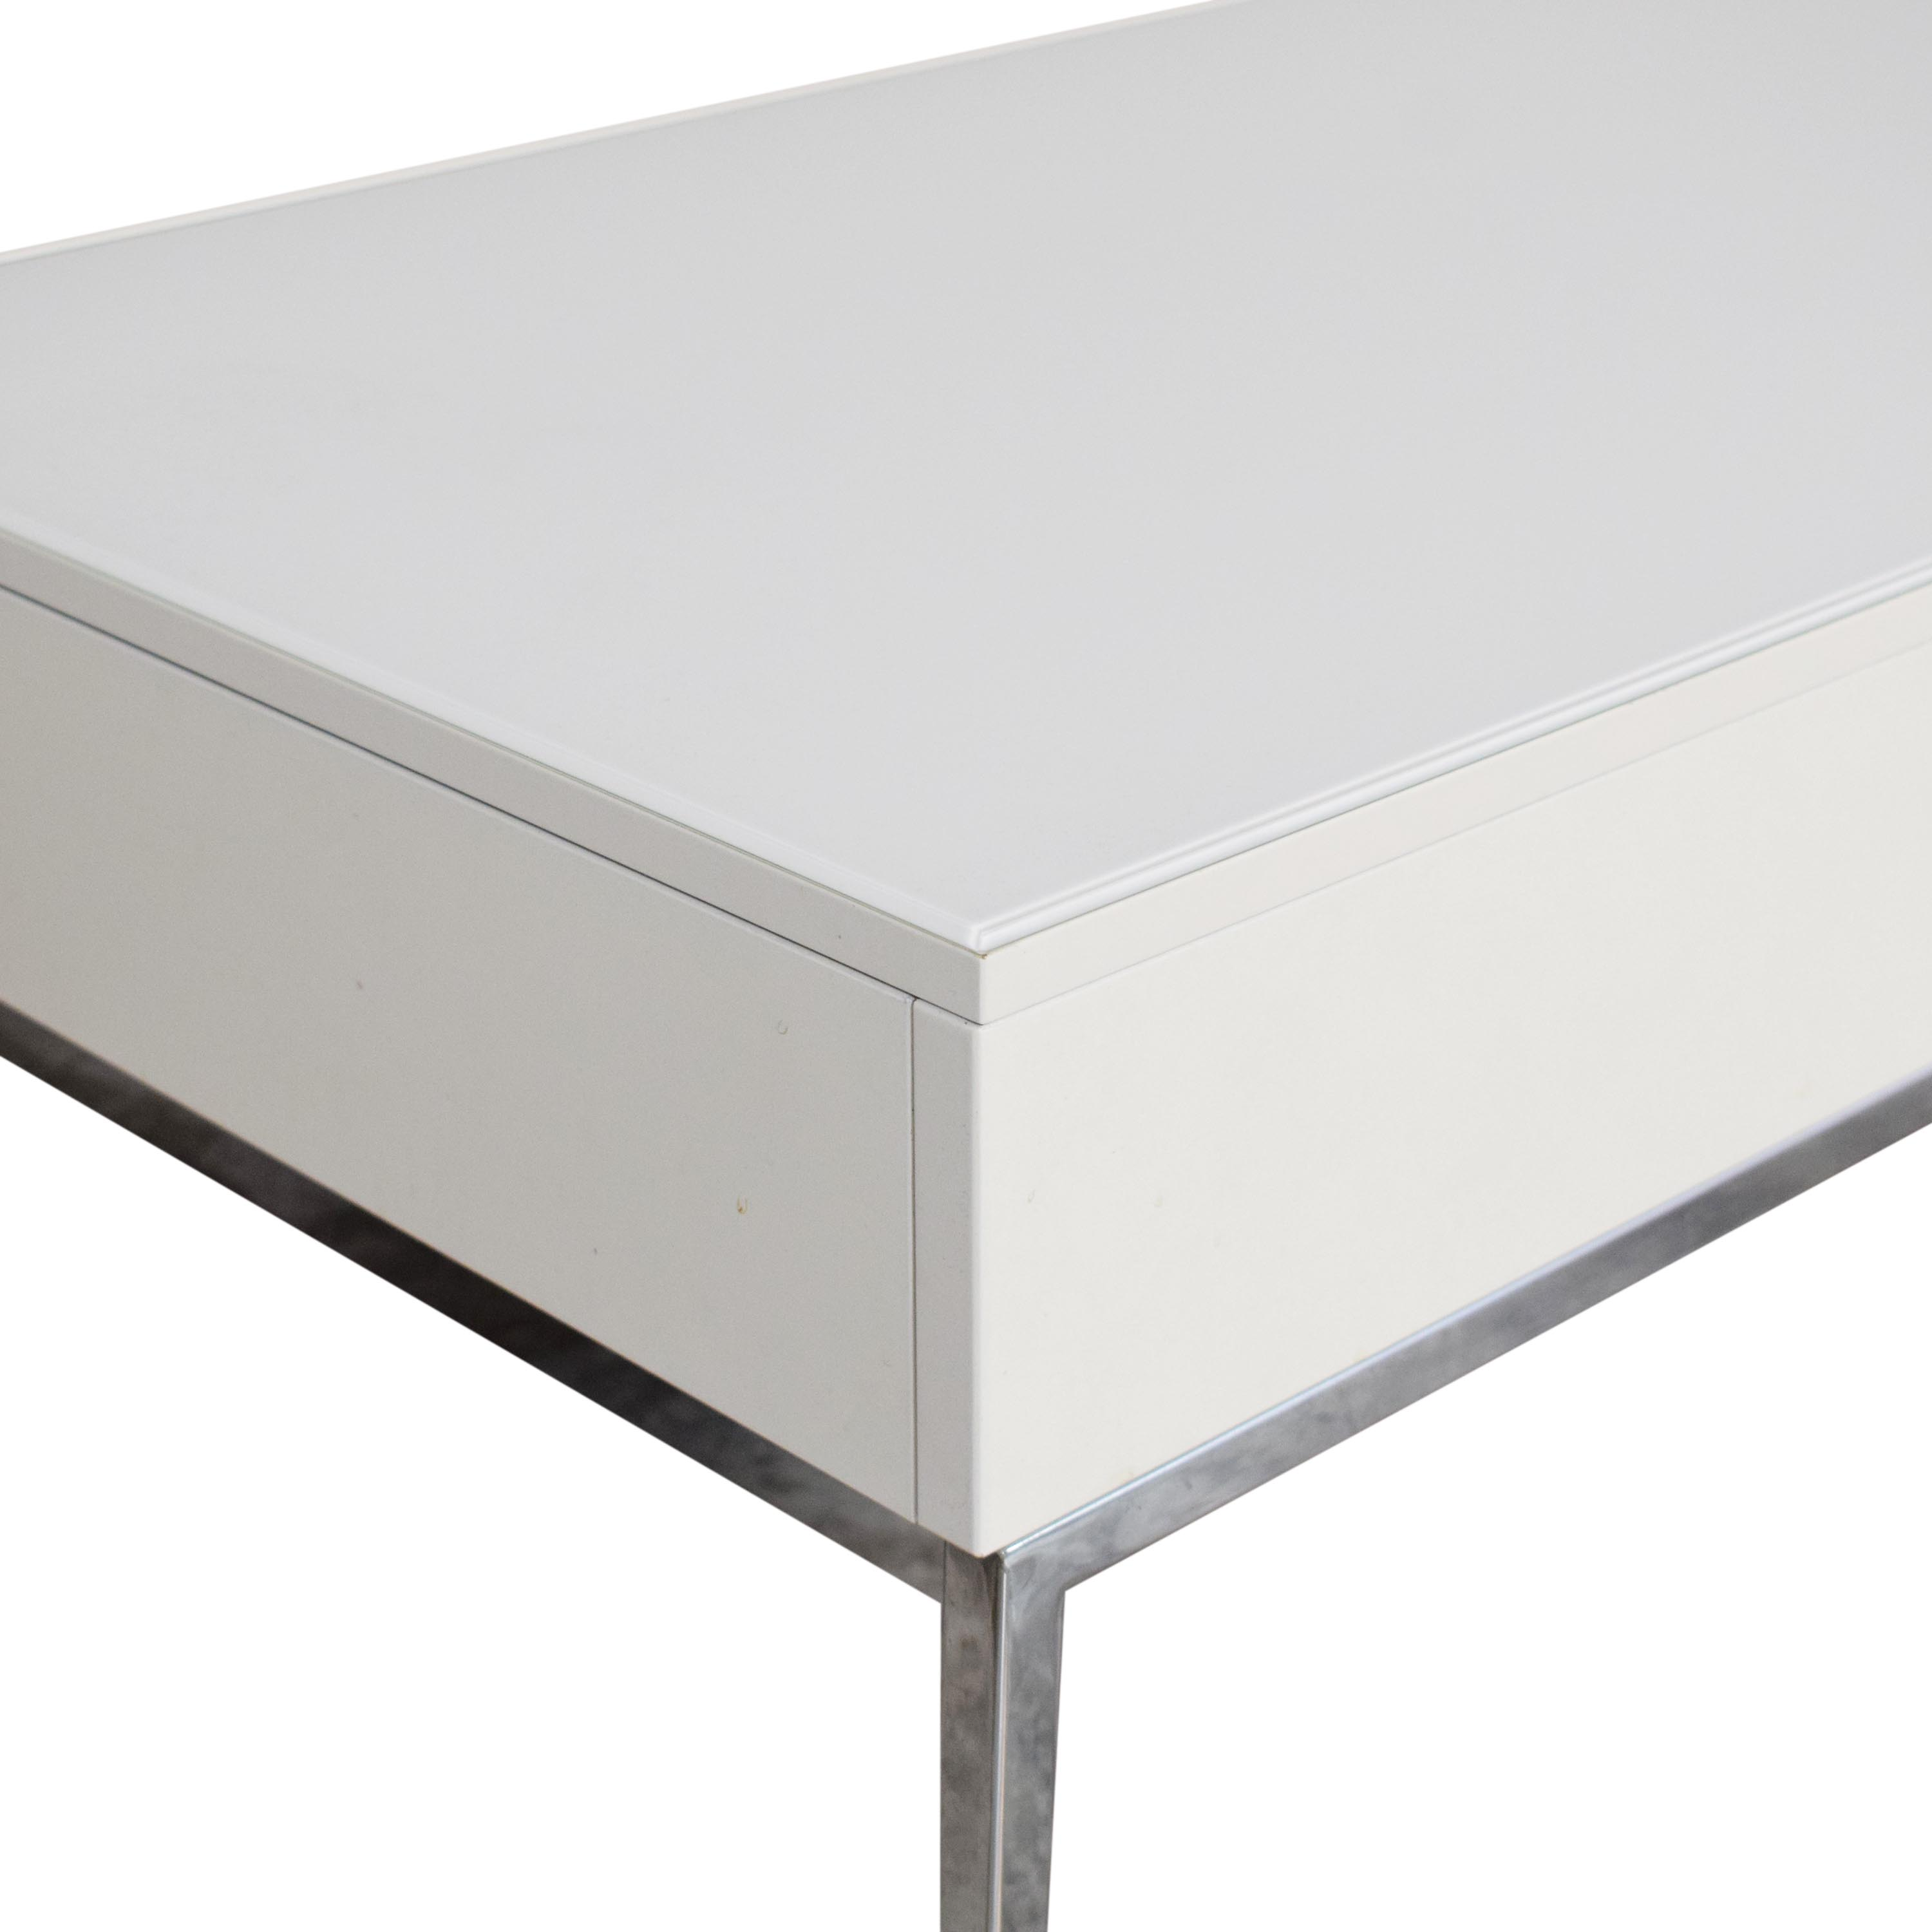 BoConcept Bo Concept Chiva Coffee Table Functional Coffee Table with Storage used